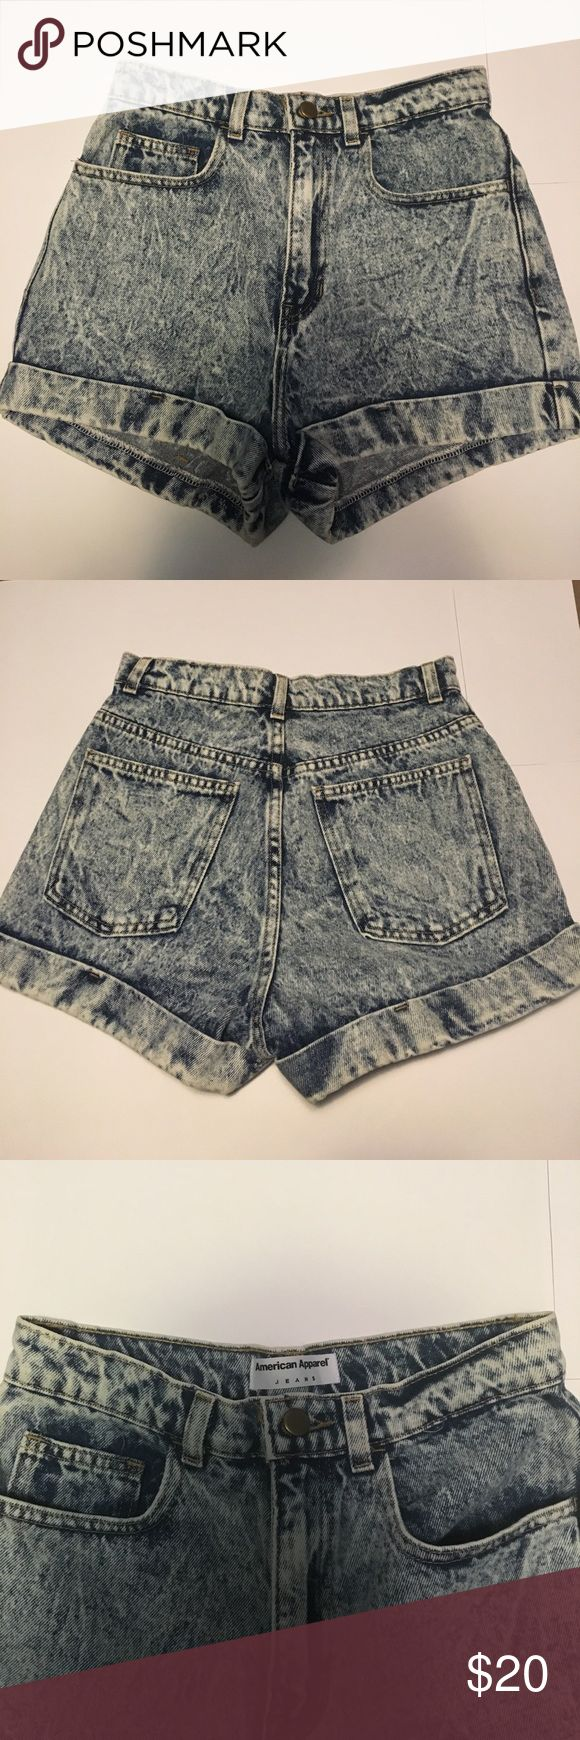 American Apparel High Waisted Acid Wash Shorts Blue acid wash (looks like the first 2 pictures), great quality shorts, very high waisted and cuffed, new condition, never been worn, perfect with crop tops for the summer American Apparel Shorts Jean Shorts